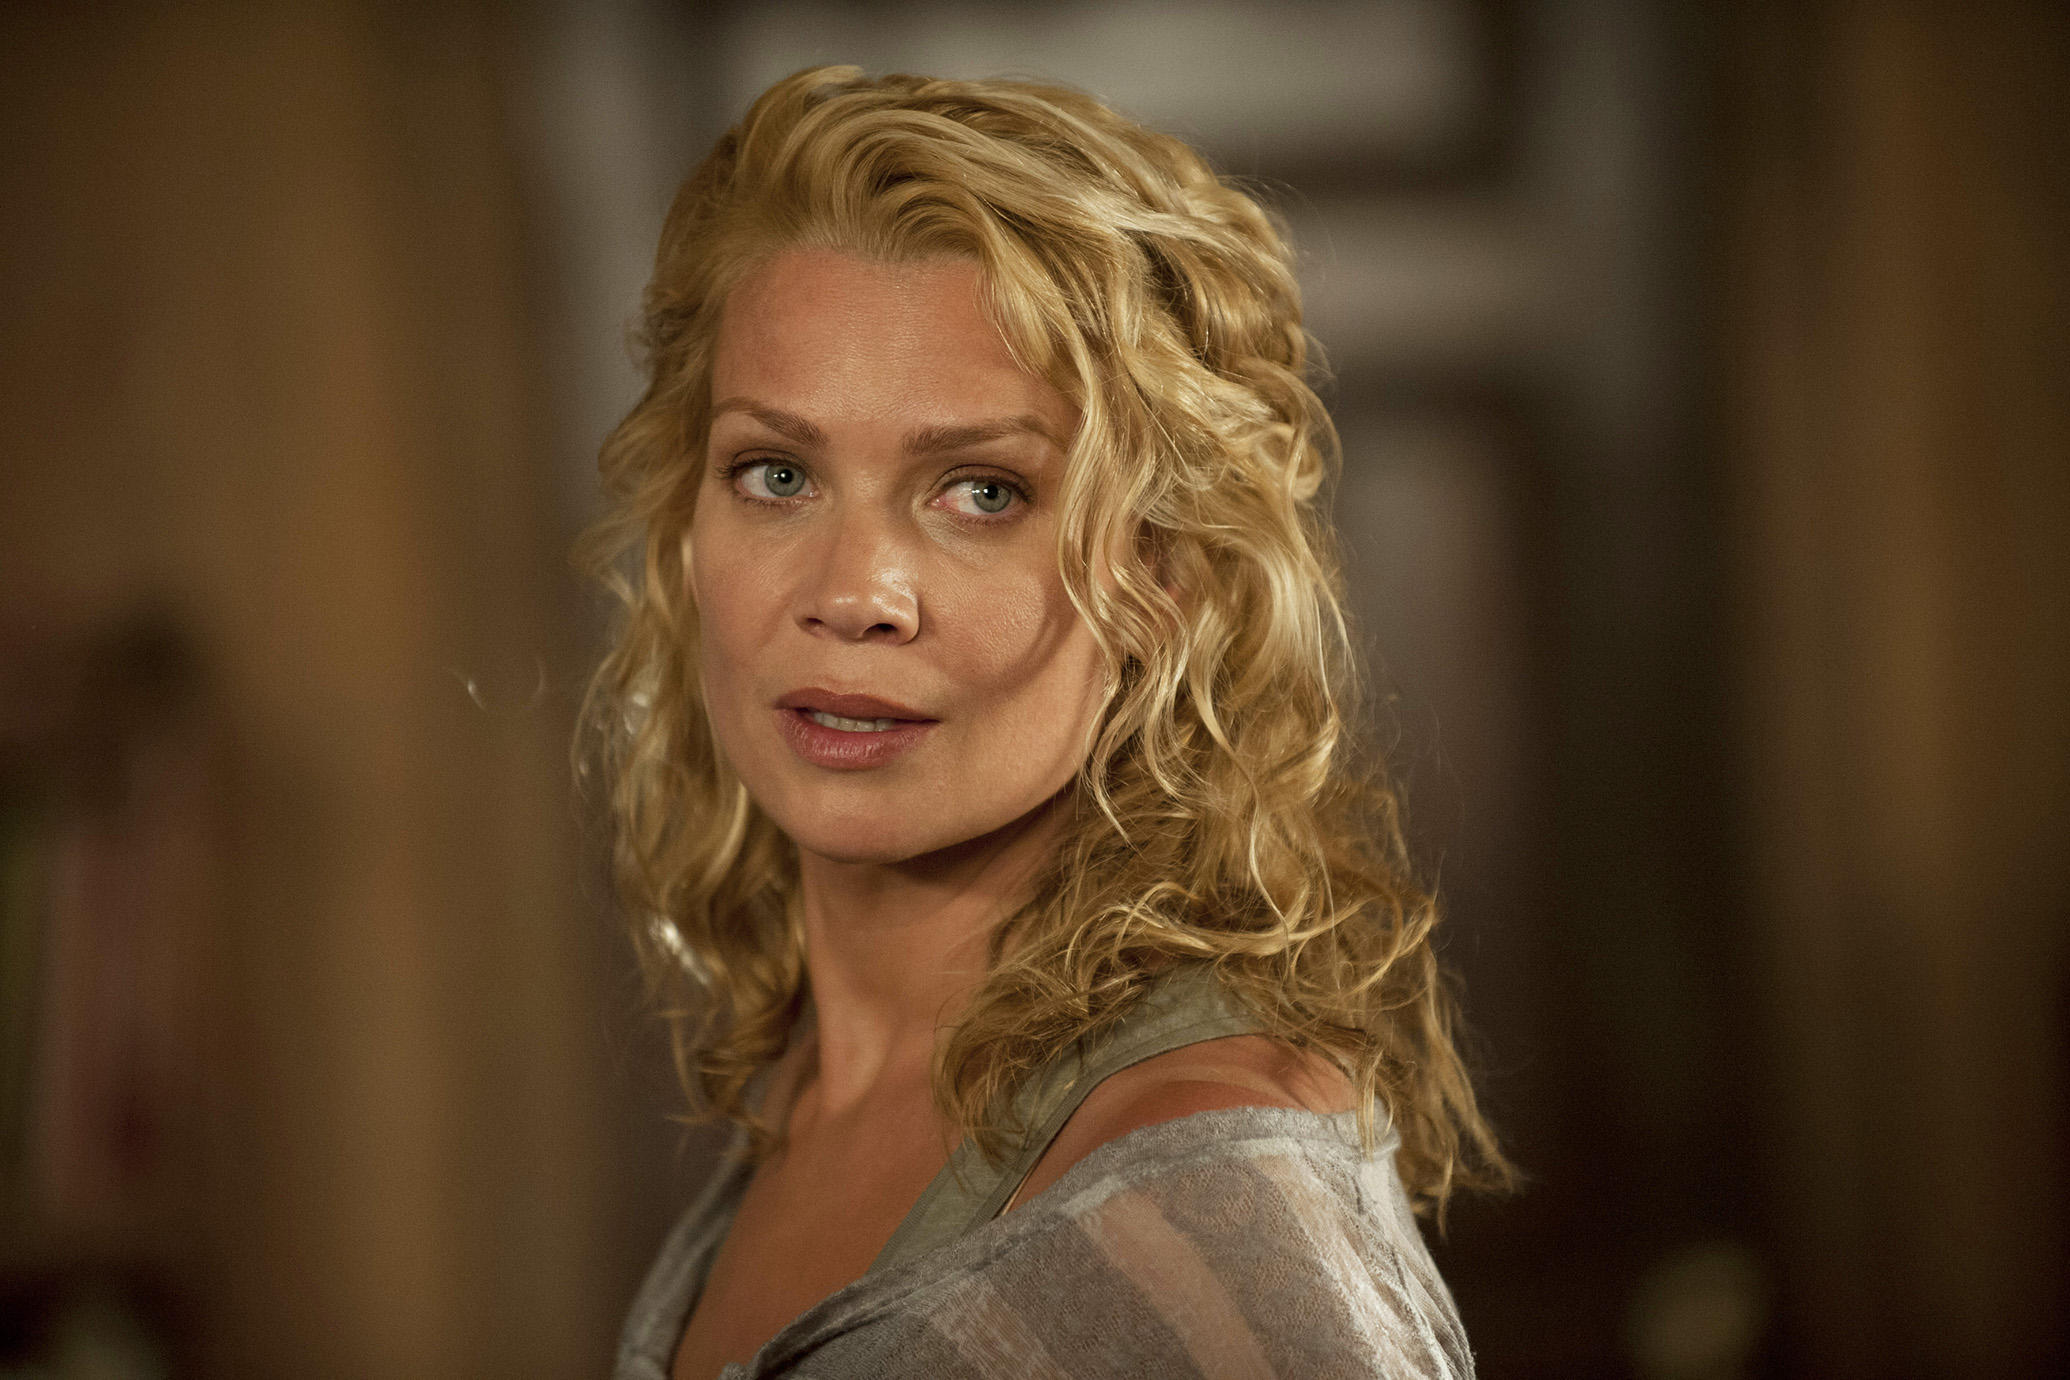 'The walking Dead': Filtran fotos íntimas de la actriz Laurie Holden [FOTOS]